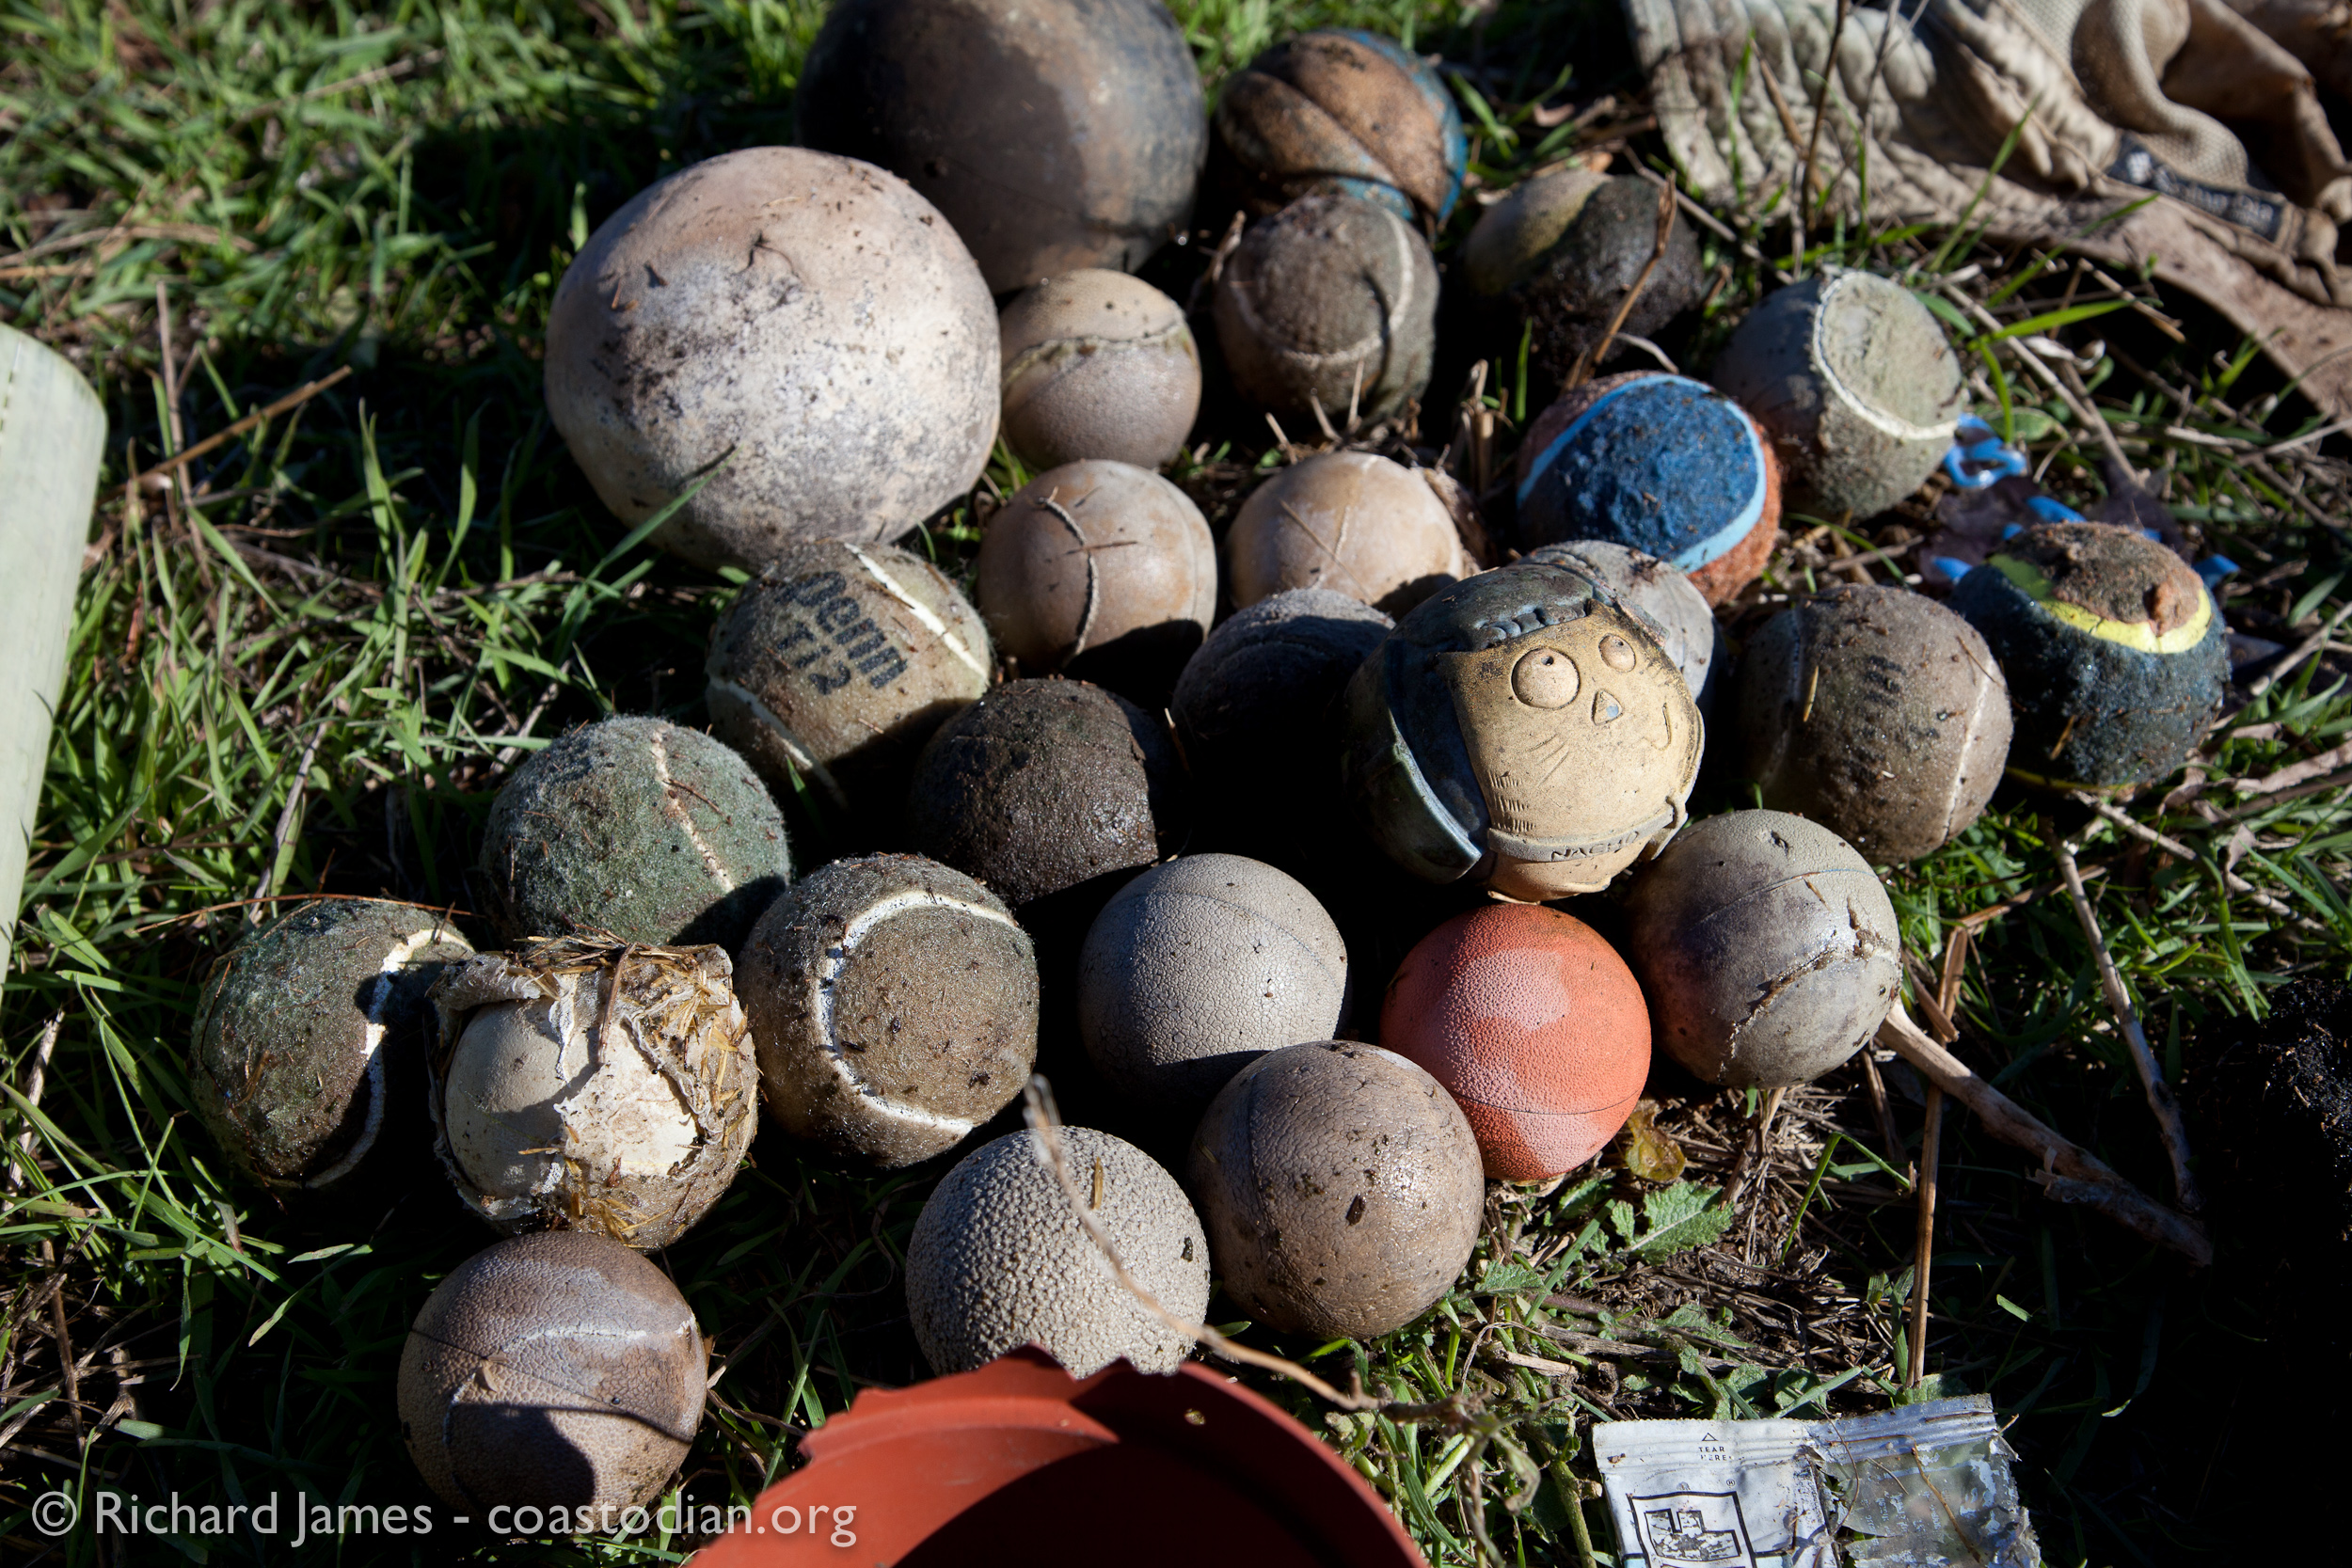 Lots of unhappy (or lazy) dogs that failed to retrieve these balls. ©Richard James - coastodian.org